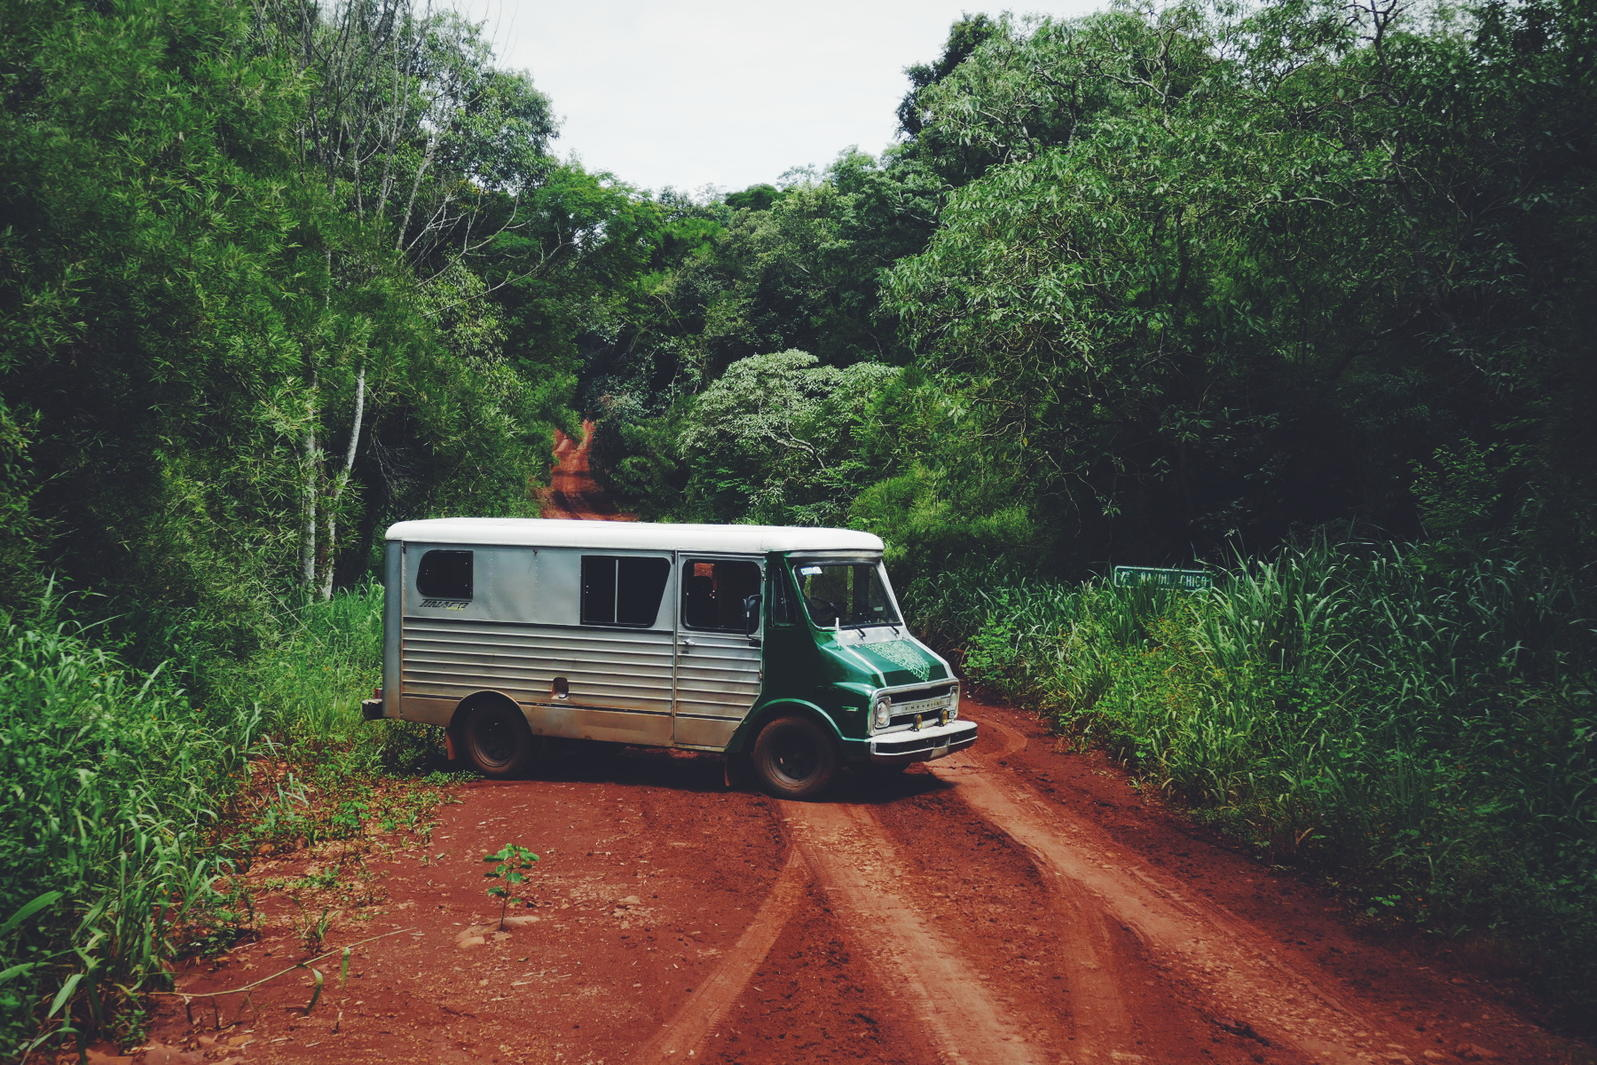 Guy Cox's 1974 Chevy camper van, which he just acquired a month or so ago, is our transportation for the next several days. Credit: Noah Strycker